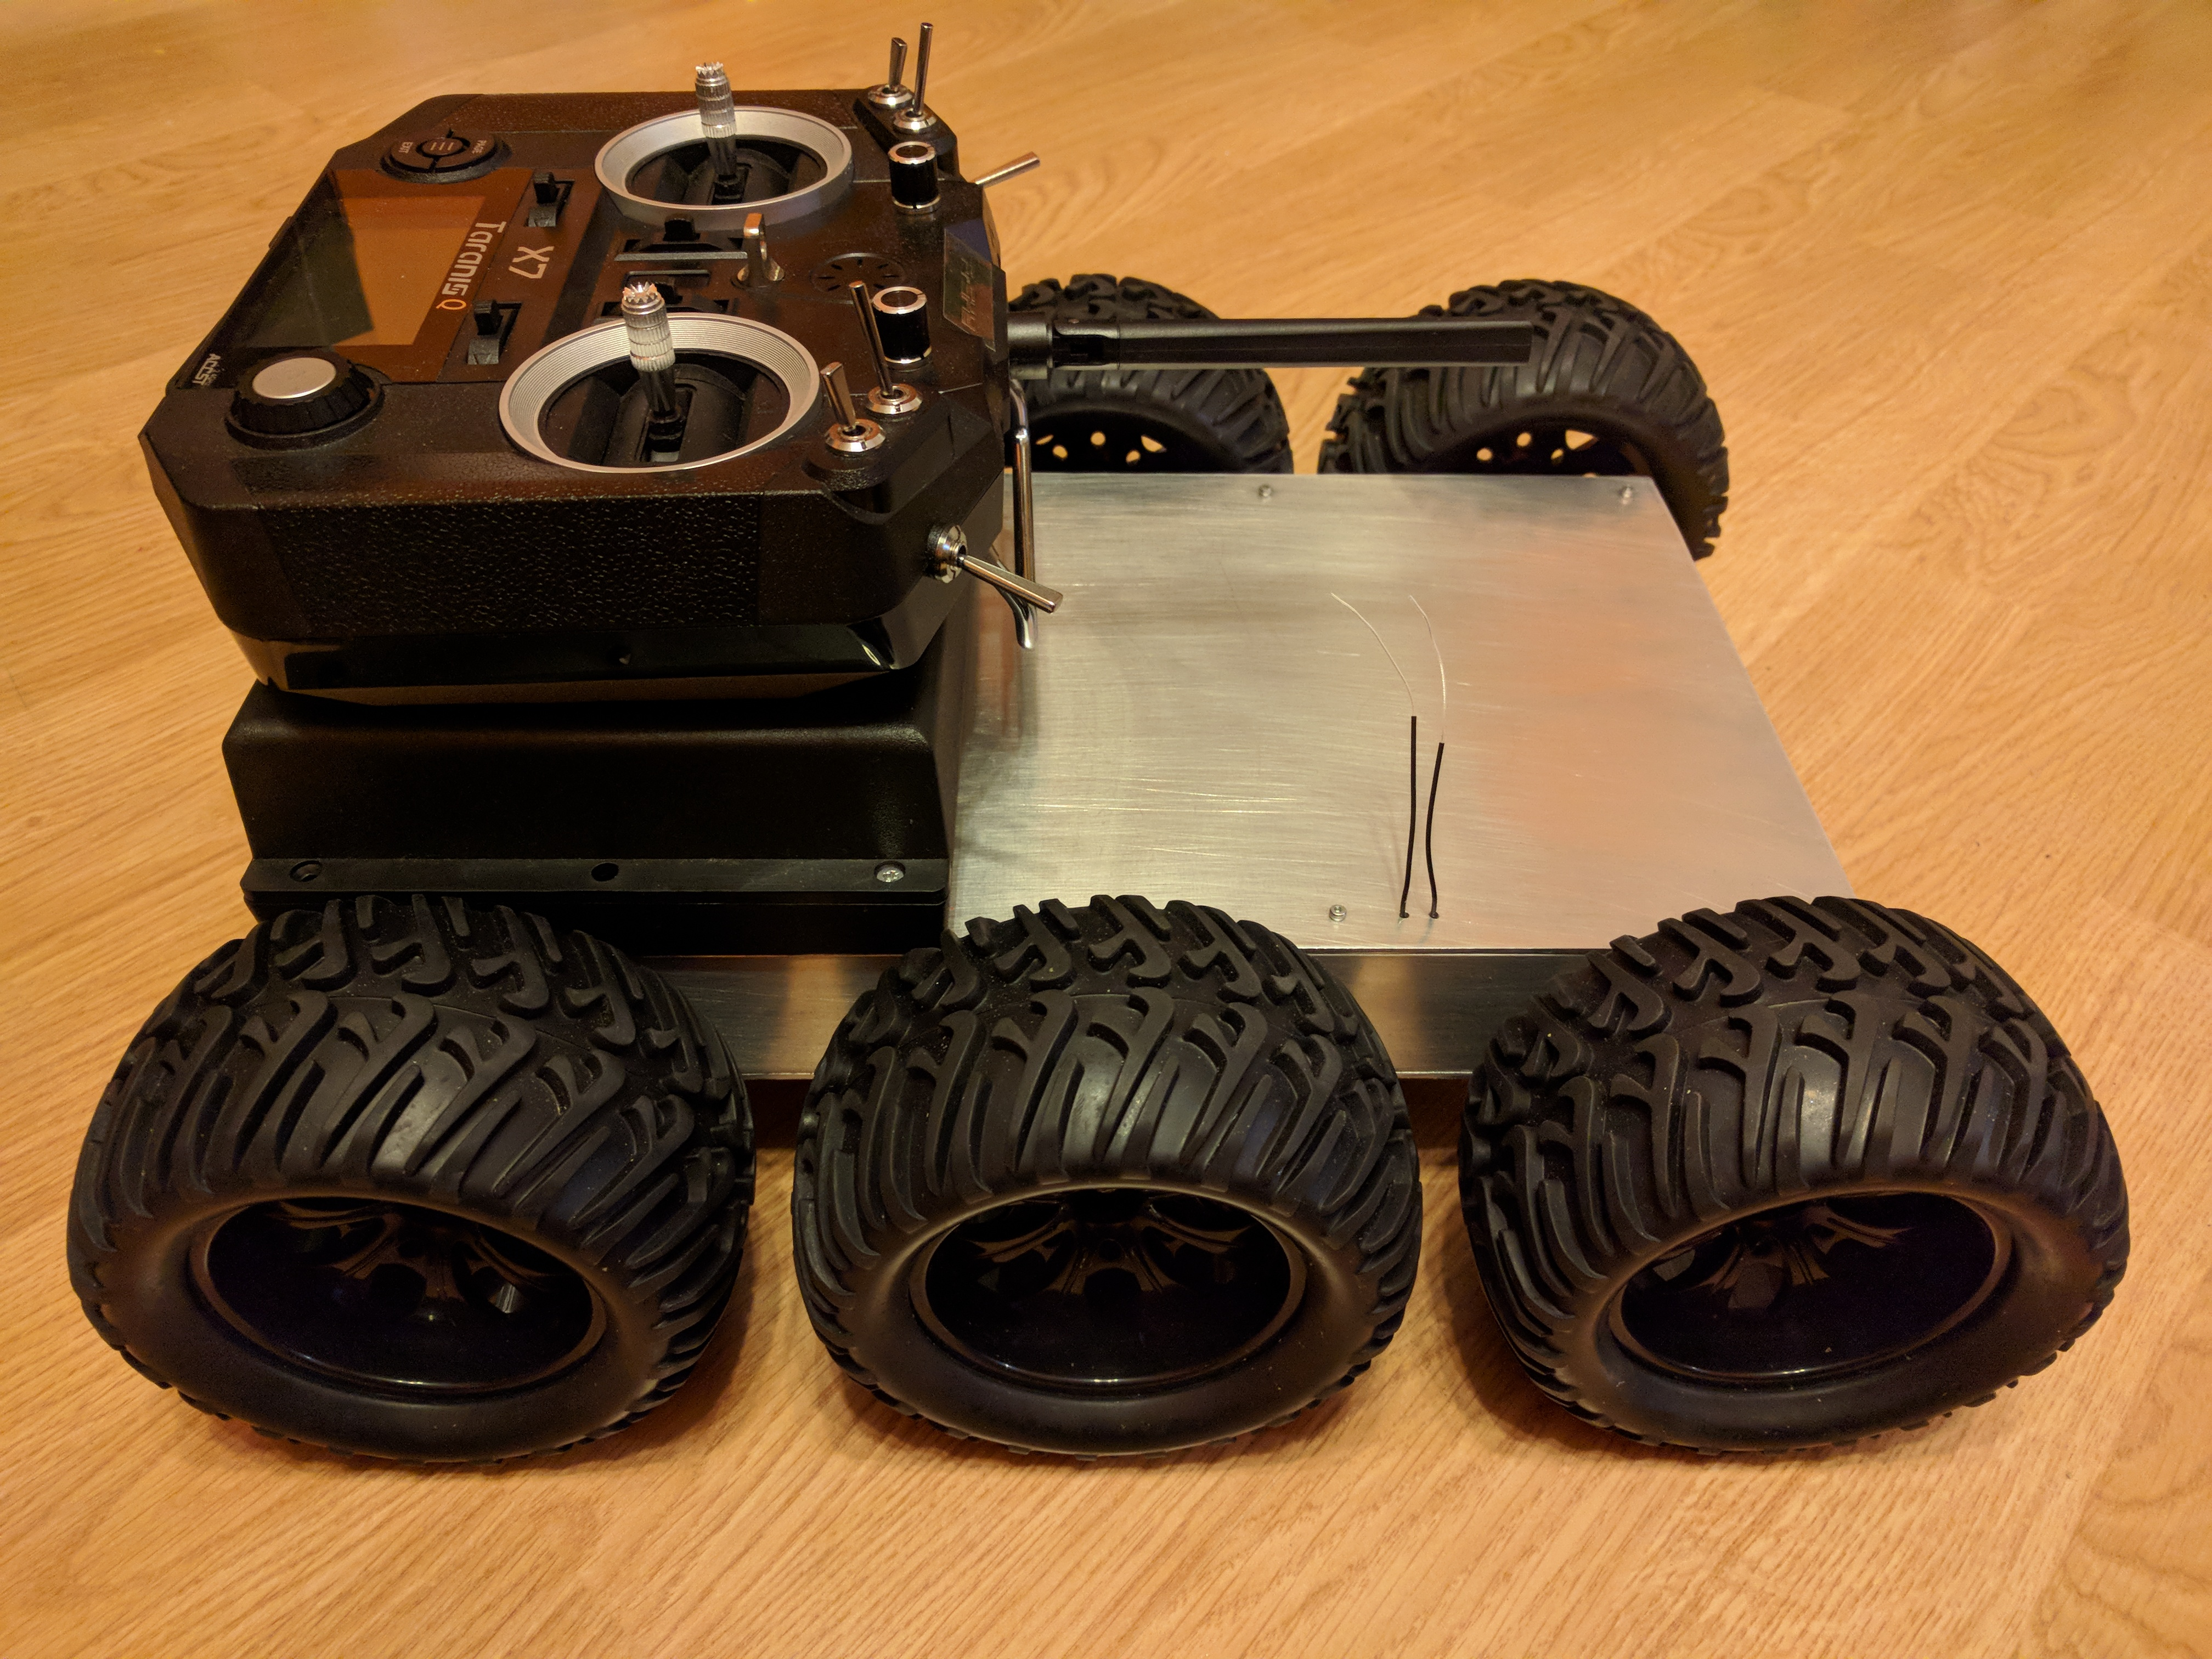 Picture of Testing of Mobile Robot